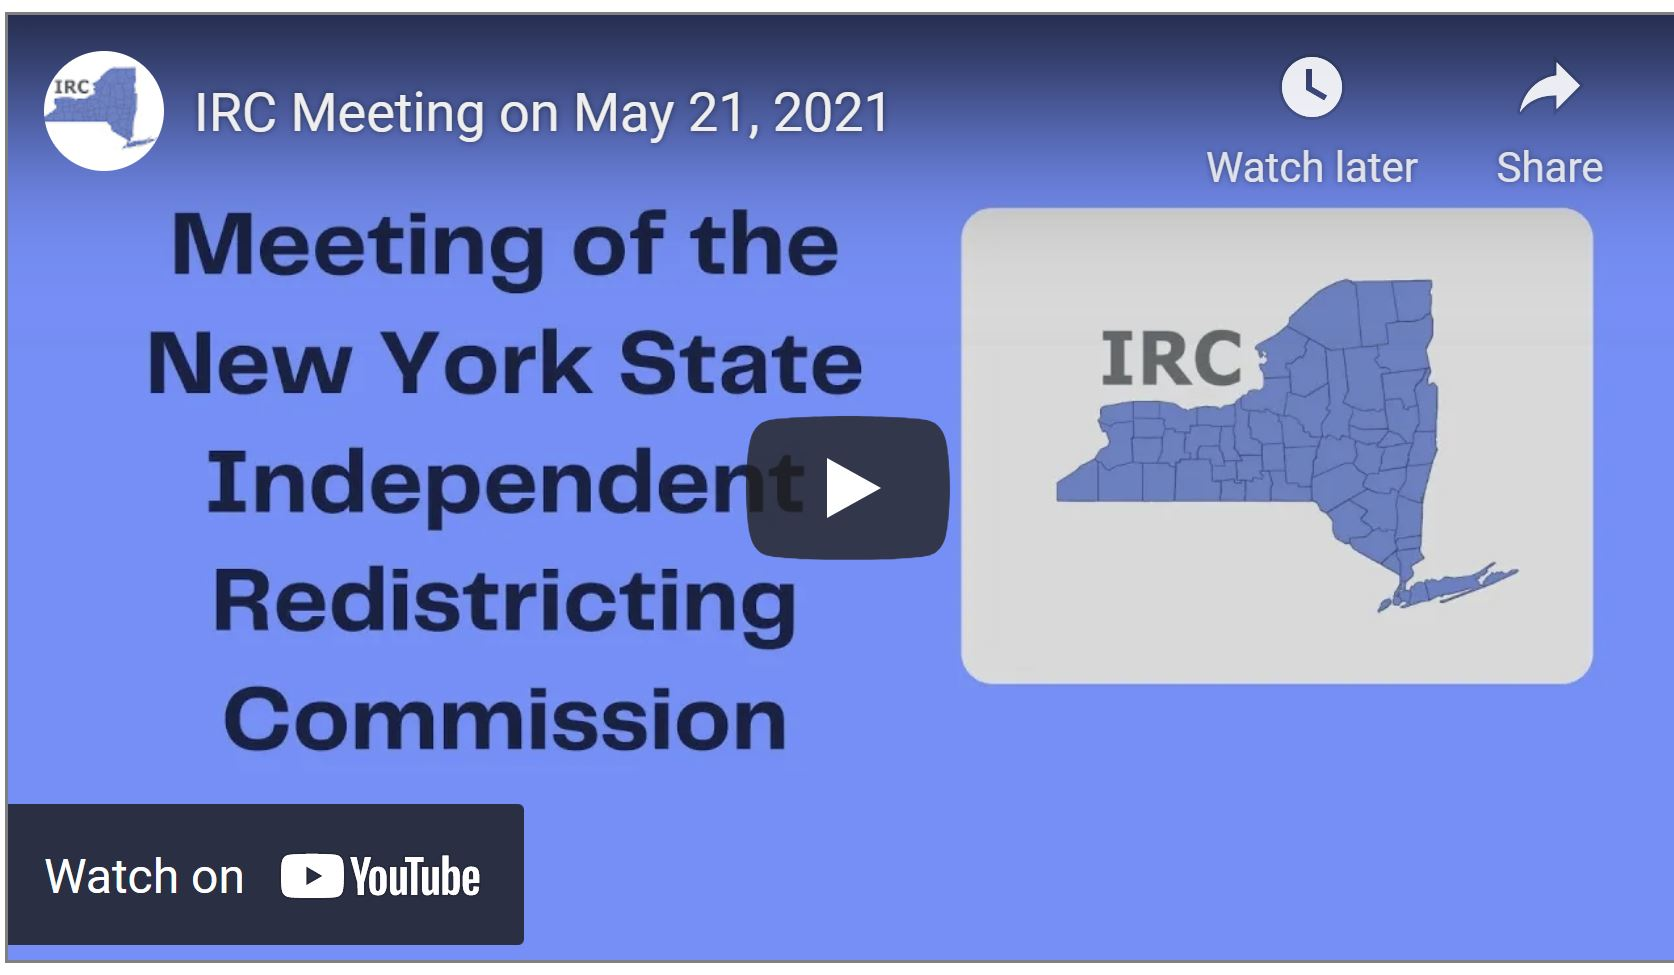 Placecard saying Meeting of the New York State Independent Redistricting Committee